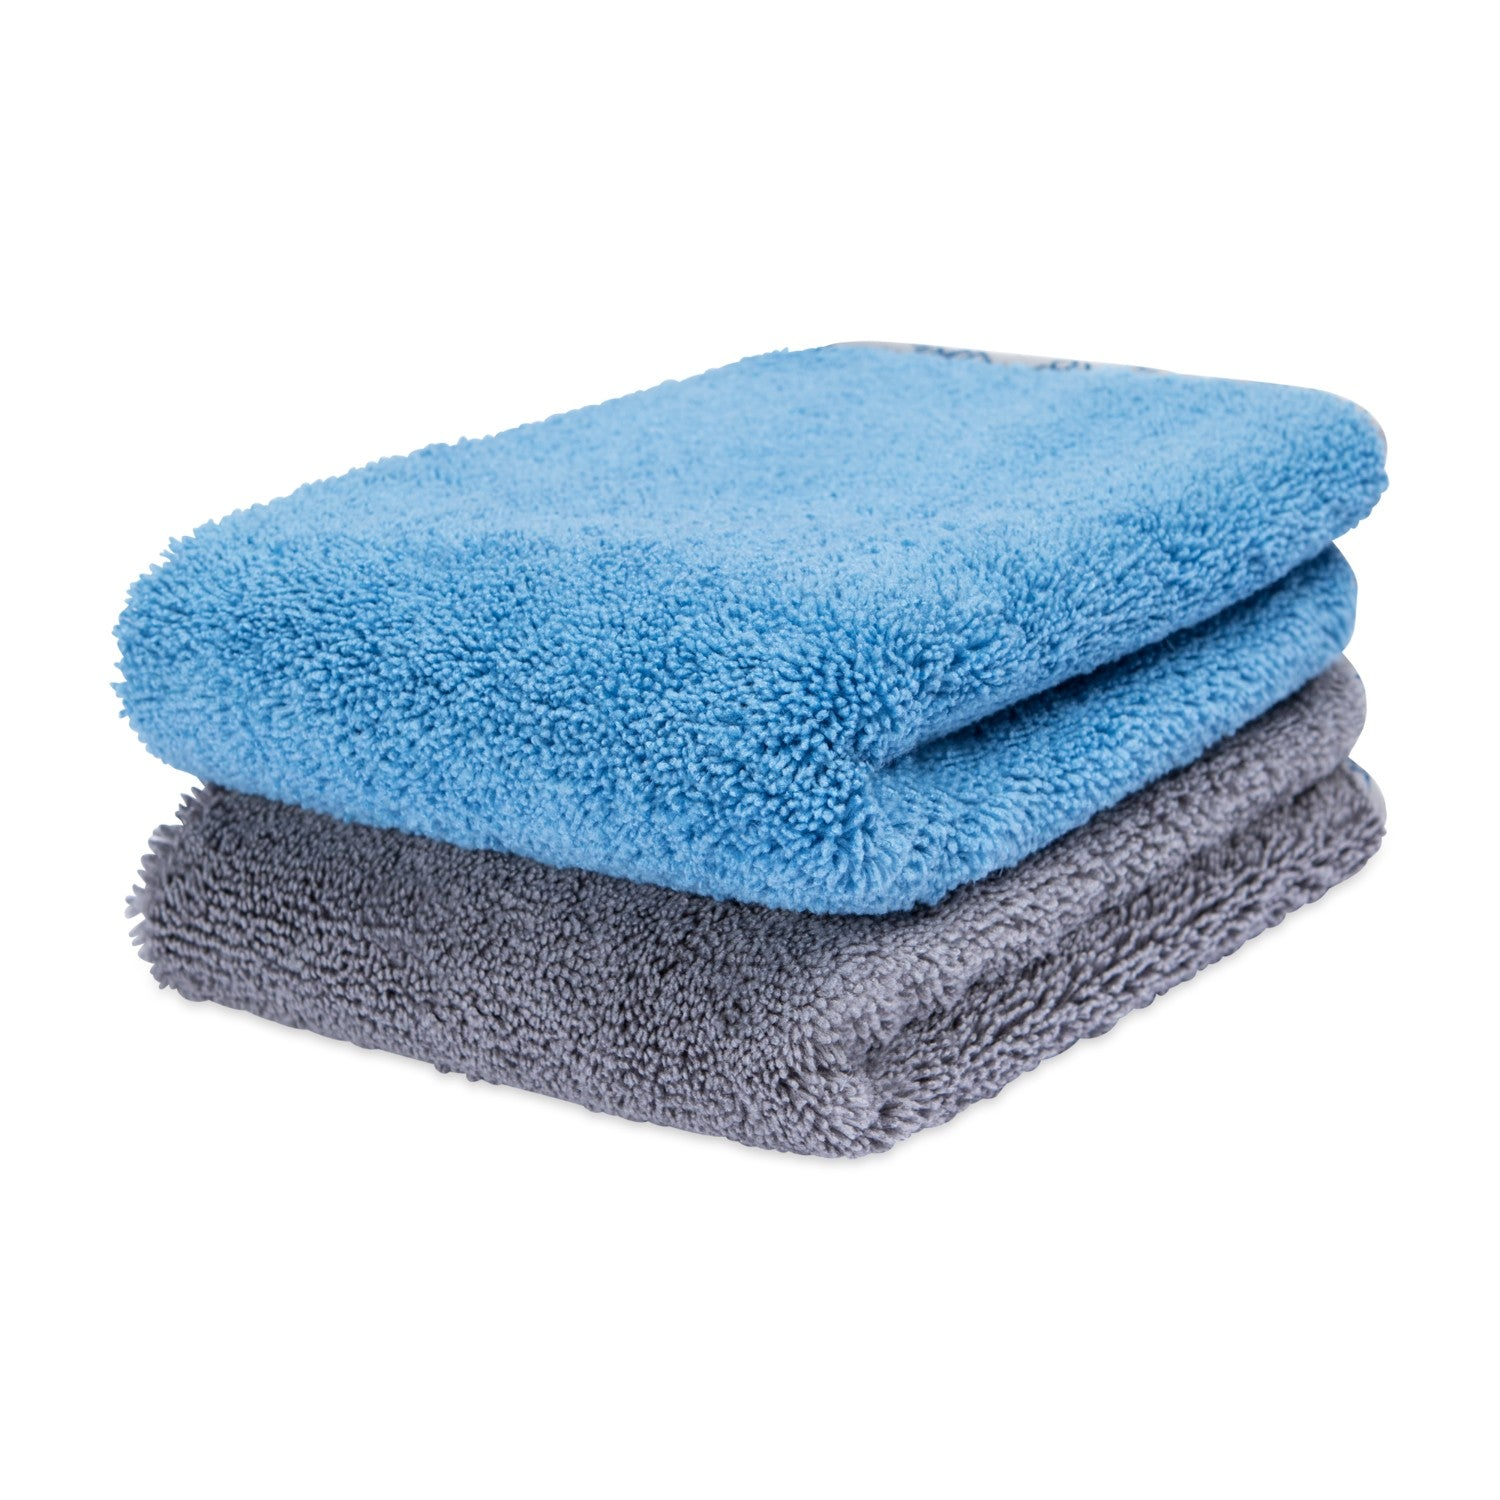 Microfiber Buffing Towels For Auto Detailing